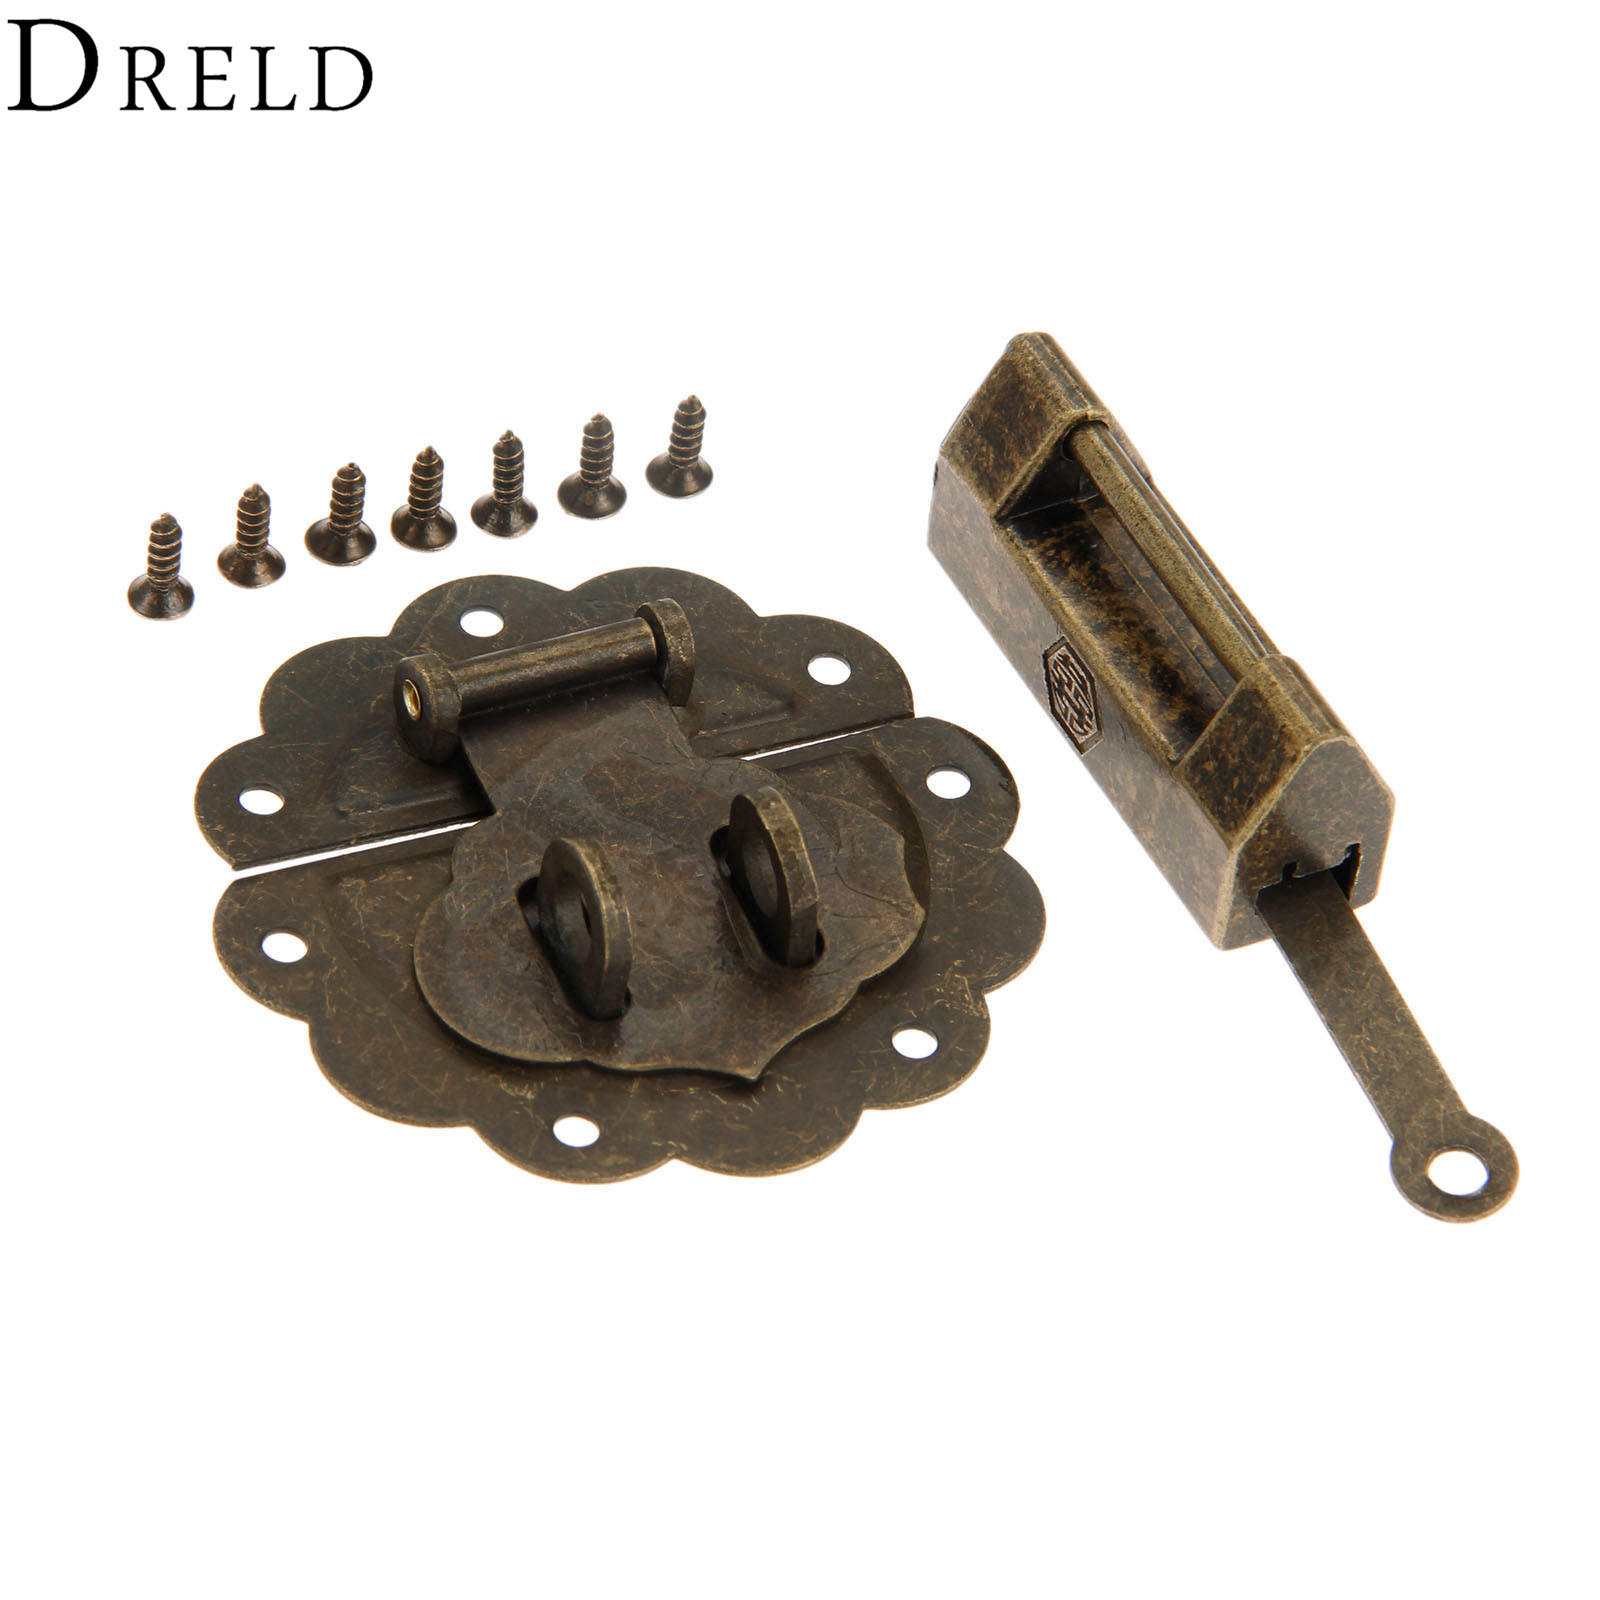 Dreld Antique Bronze Chinese Old Lock/padlock And Box Latch Hasp Buckle Clasp For Cabinet Jewelry Wooden Box Furniture Hardware 50% OFF Home Improvement Locks